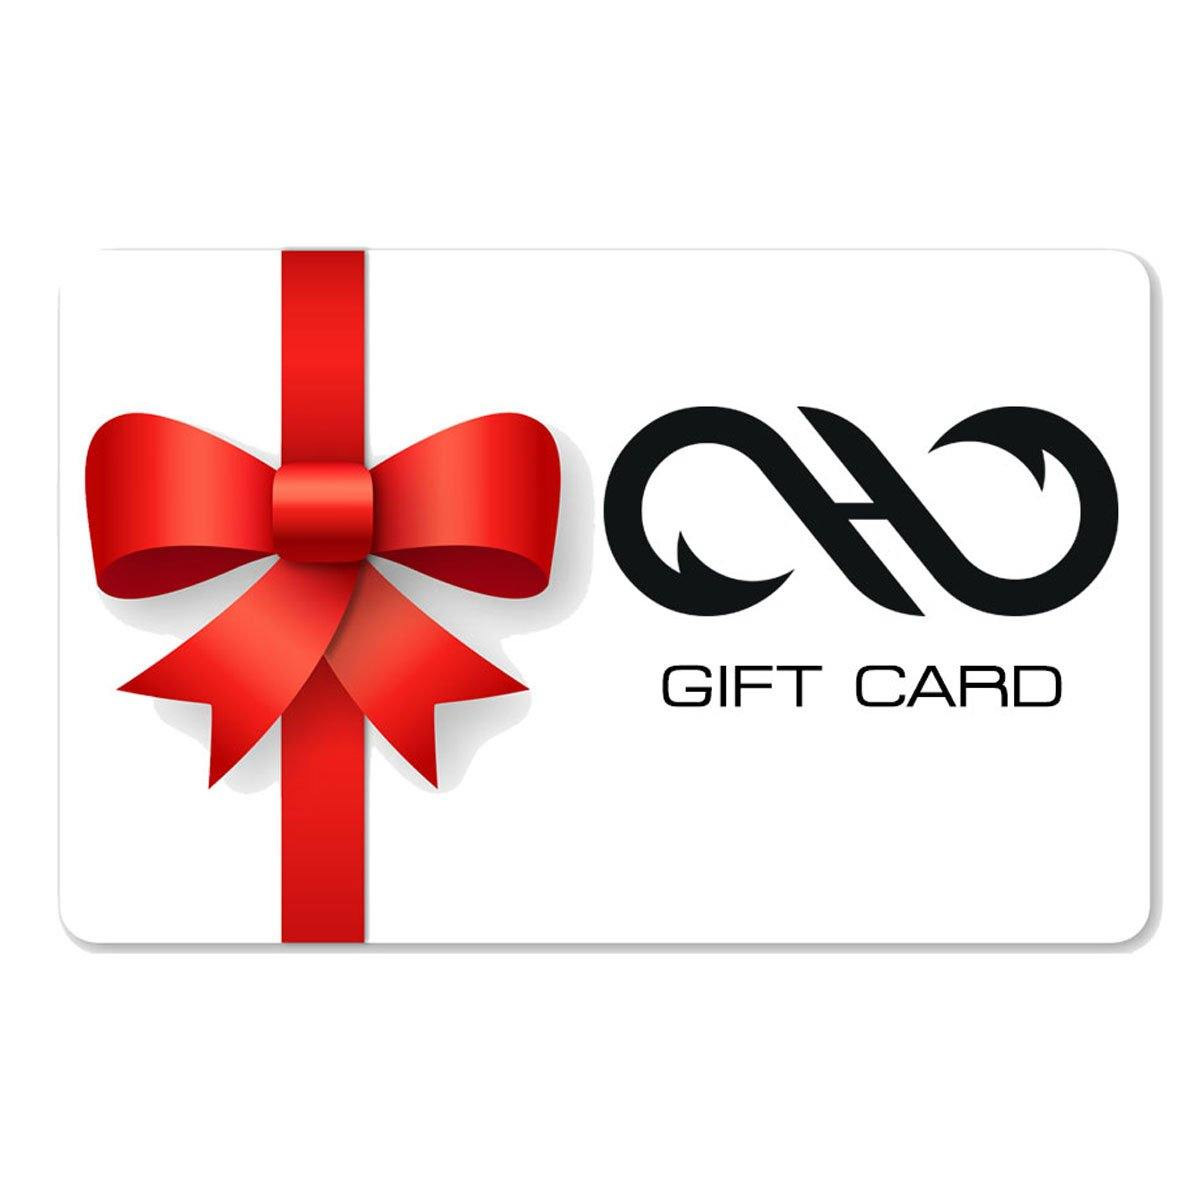 Gift Card (4371245957192)